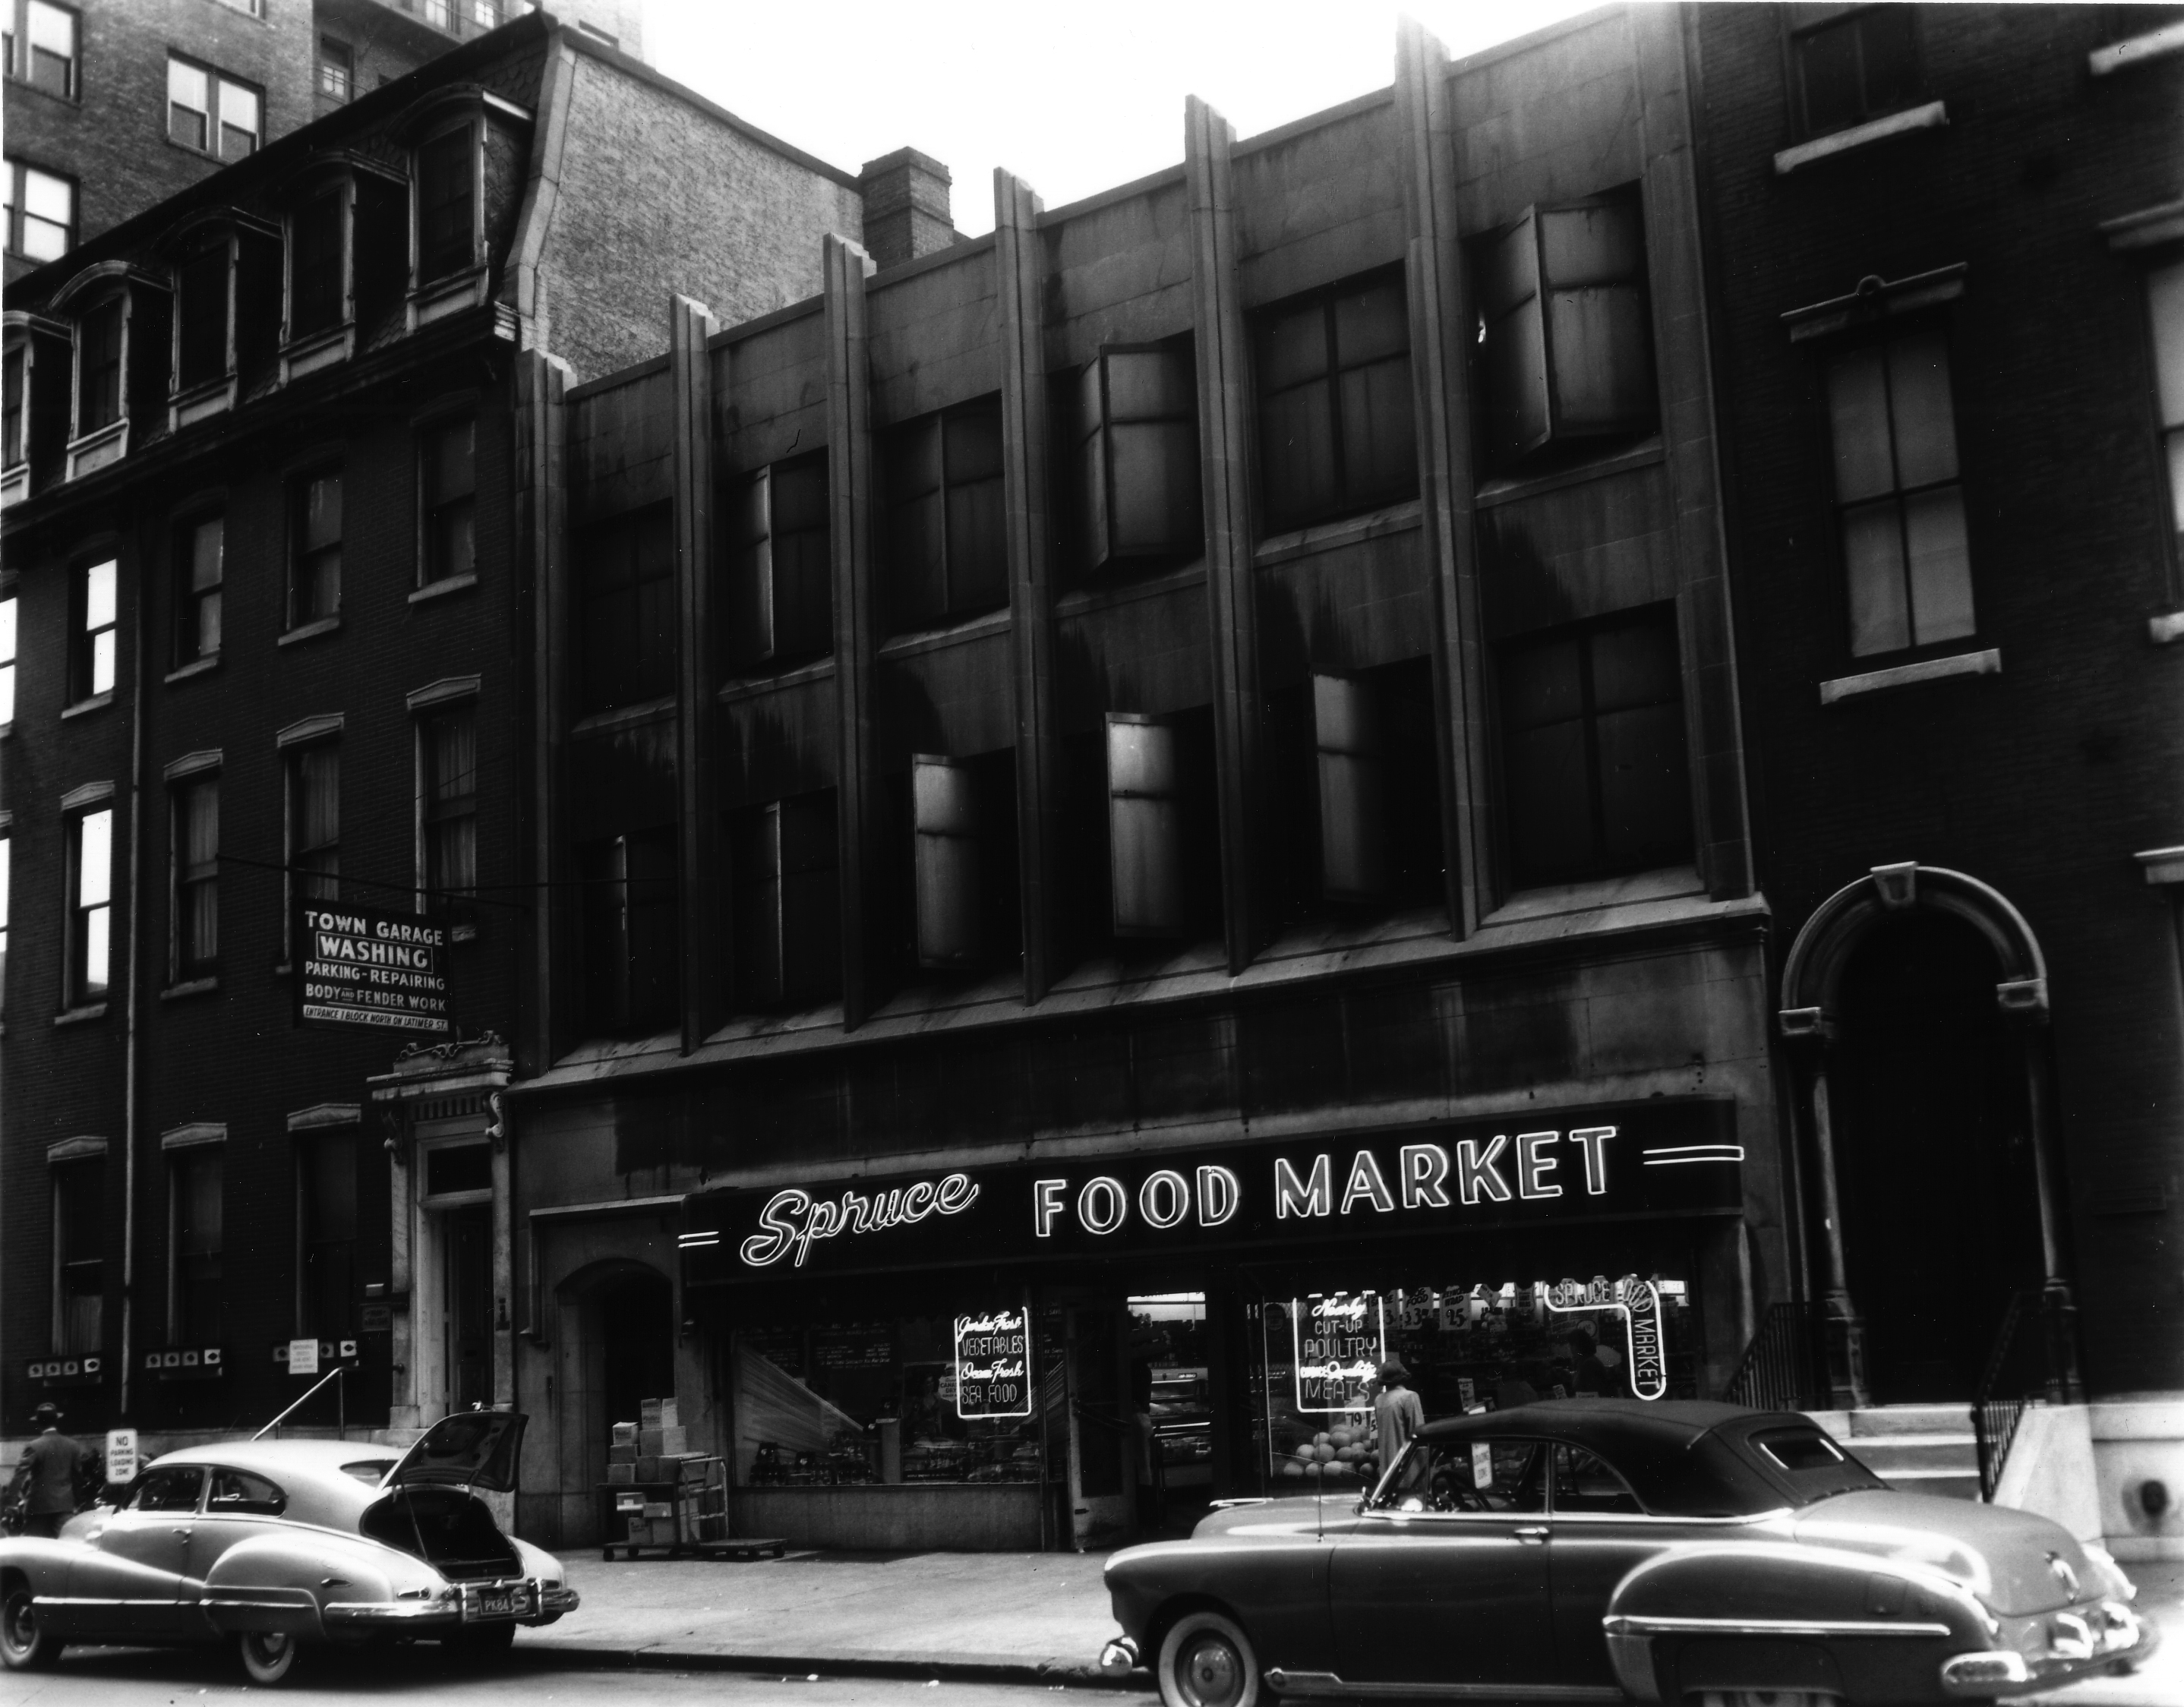 June 1, 1950, Spruce Food Market | Parker & Mullikin | Free Library of Philadelphia Print and Picture Collection